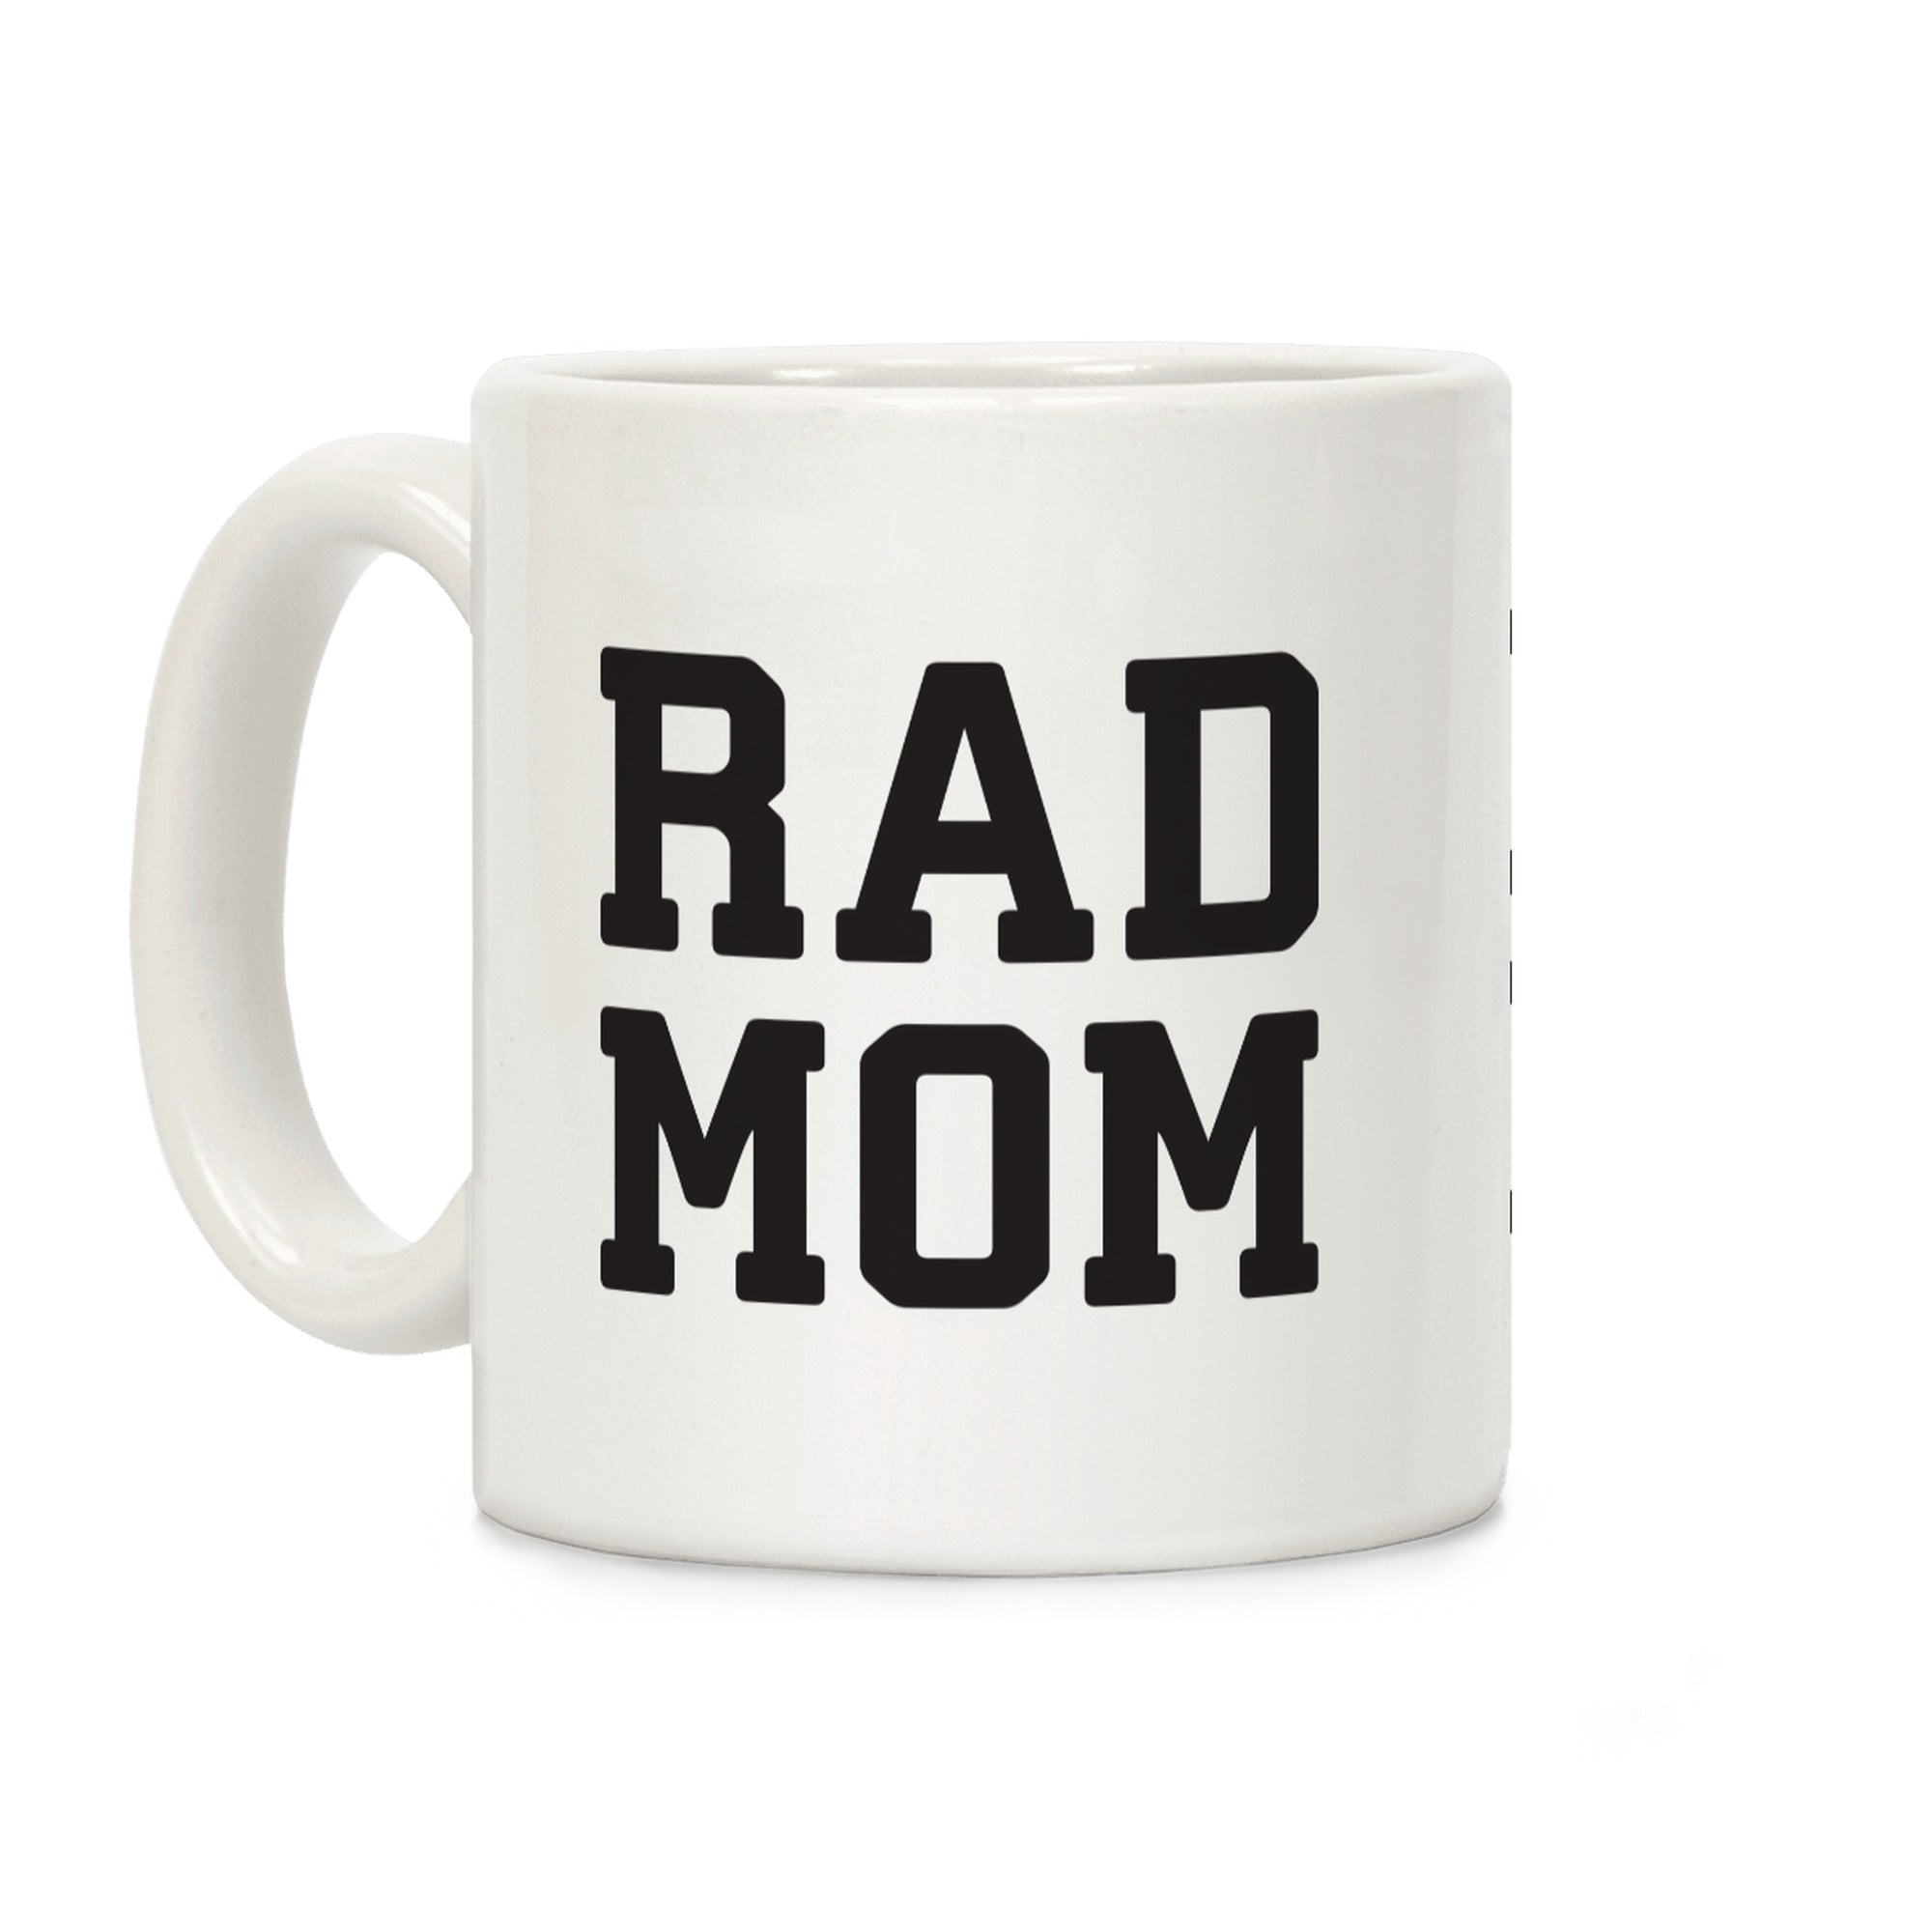 Rad Mom Ceramic Coffee Mug by LookHUMAN